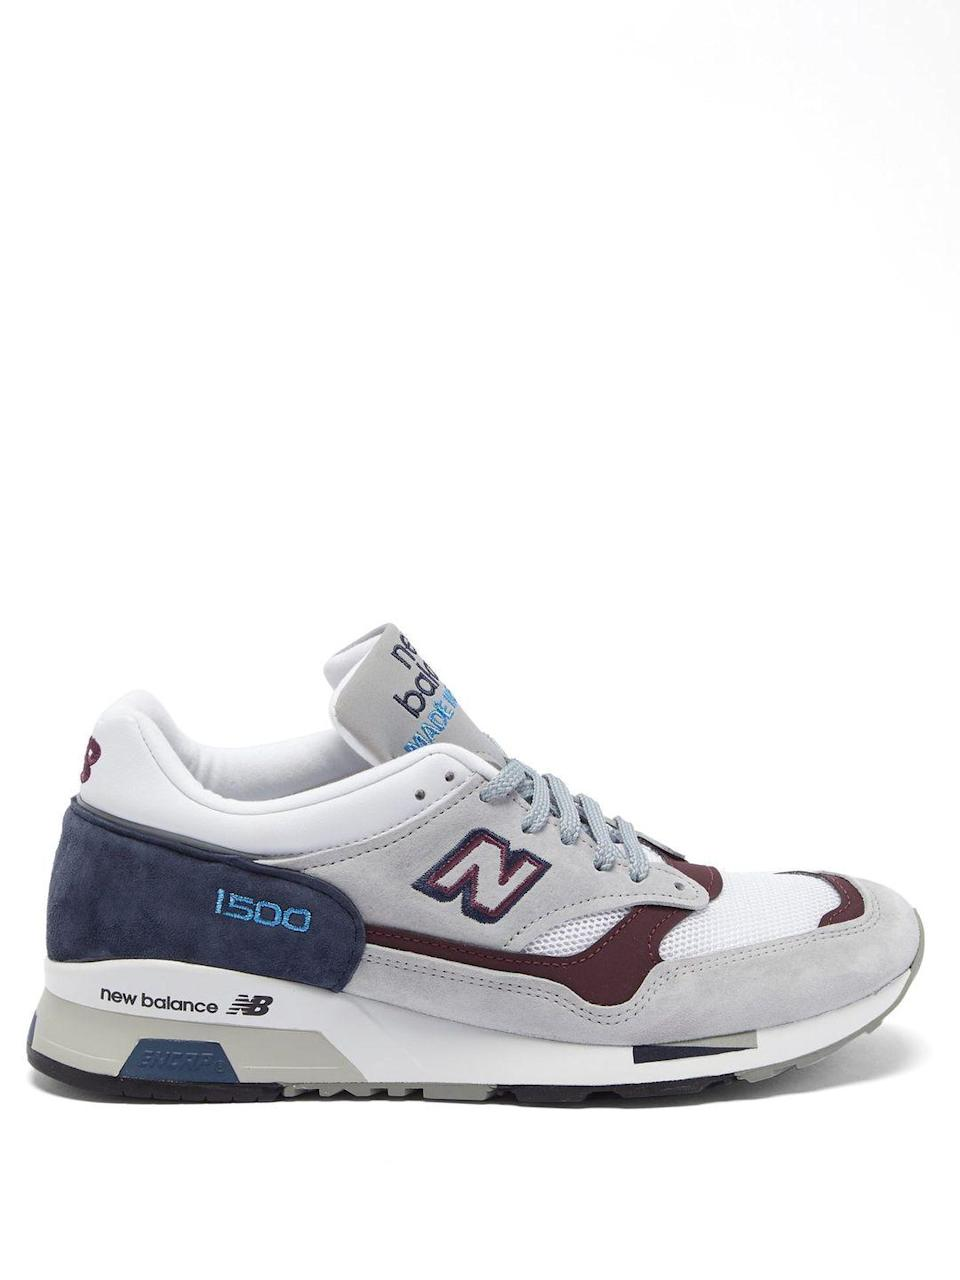 """<p>New Balance</p><p>Was £150.00</p><p>Now £90.00</p><p><a class=""""link rapid-noclick-resp"""" href=""""https://go.redirectingat.com?id=127X1599956&url=https%3A%2F%2Fwww.matchesfashion.com%2Fproducts%2FNew-Balance-Made-in-England-1500-leather-and-mesh-trainers-1356967&sref=https%3A%2F%2Fwww.elle.com%2Fuk%2Ffashion%2Fwhat-to-wear%2Fg36616066%2Fmatches-fashion-sale%2F"""" rel=""""nofollow noopener"""" target=""""_blank"""" data-ylk=""""slk:SHOP NOW"""">SHOP NOW</a></p><p>New Balance trainers make dressing cool very easy. </p>"""